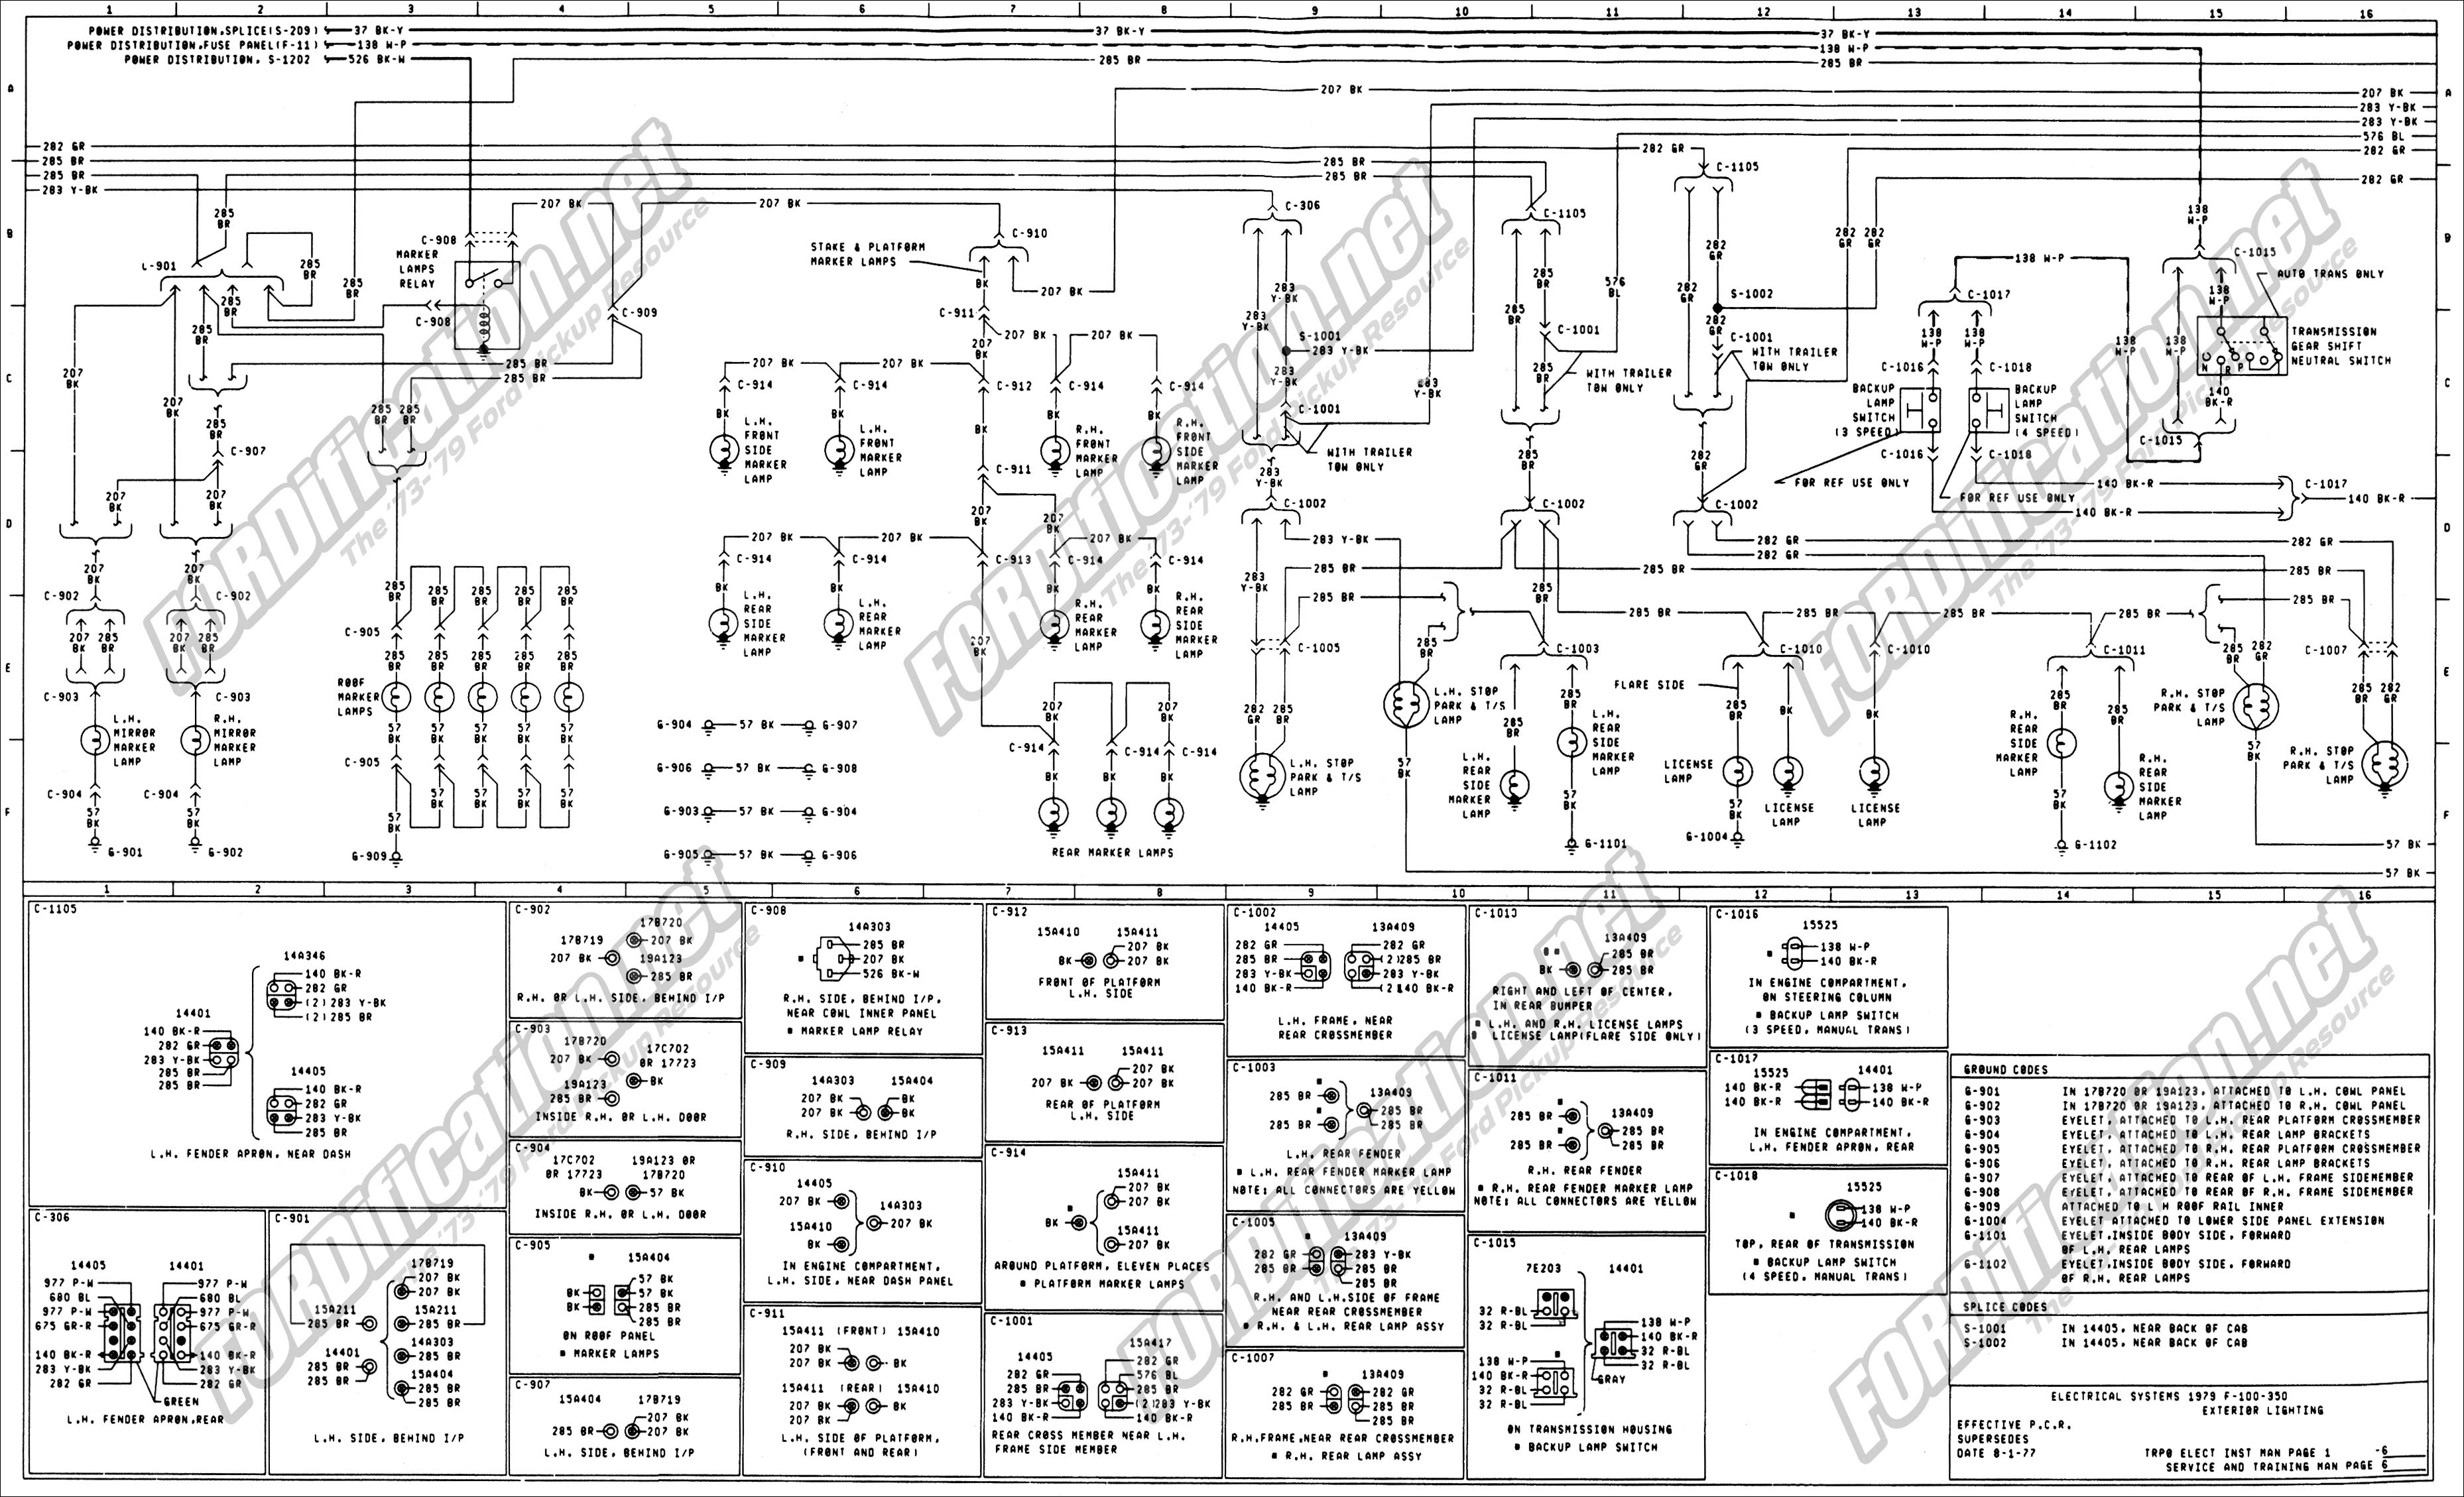 1978 Firebird Wiring Diagram Lights Smart Diagrams 1981 Pontiac Trans Am Fuse Box 1973 1979 Ford Truck Schematics Tail Light 79